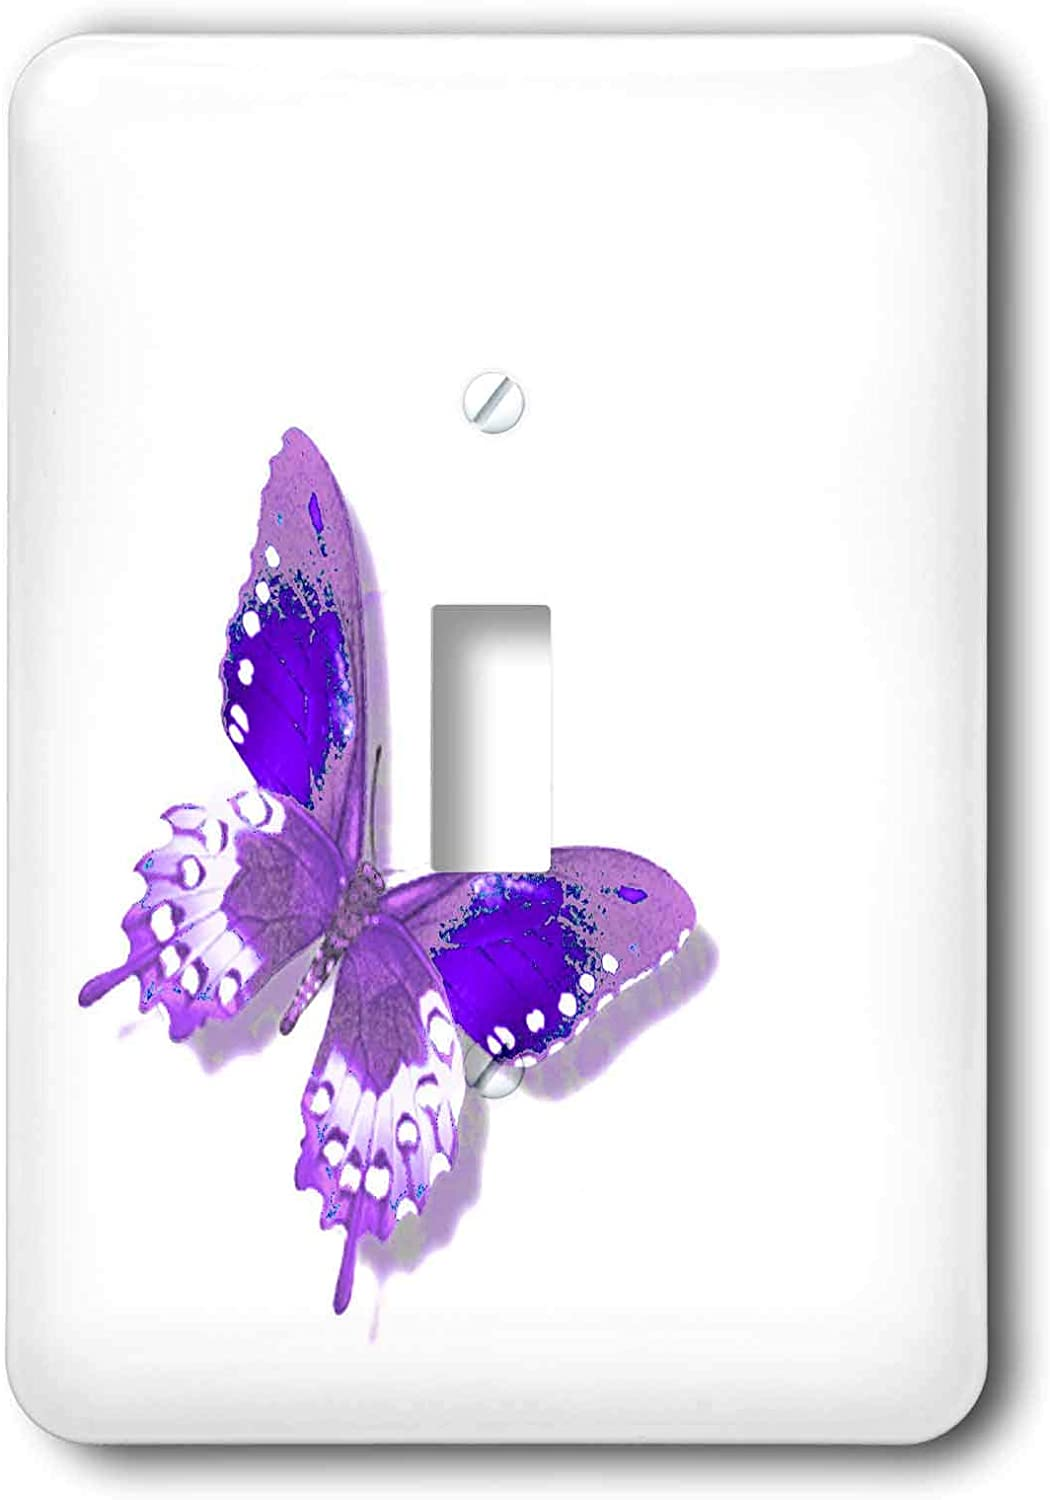 3drose Llc Lsp 31399 1 Purple And White Butterfly Art Nature Designs Single Toggle Switch Switch Plates Amazon Com